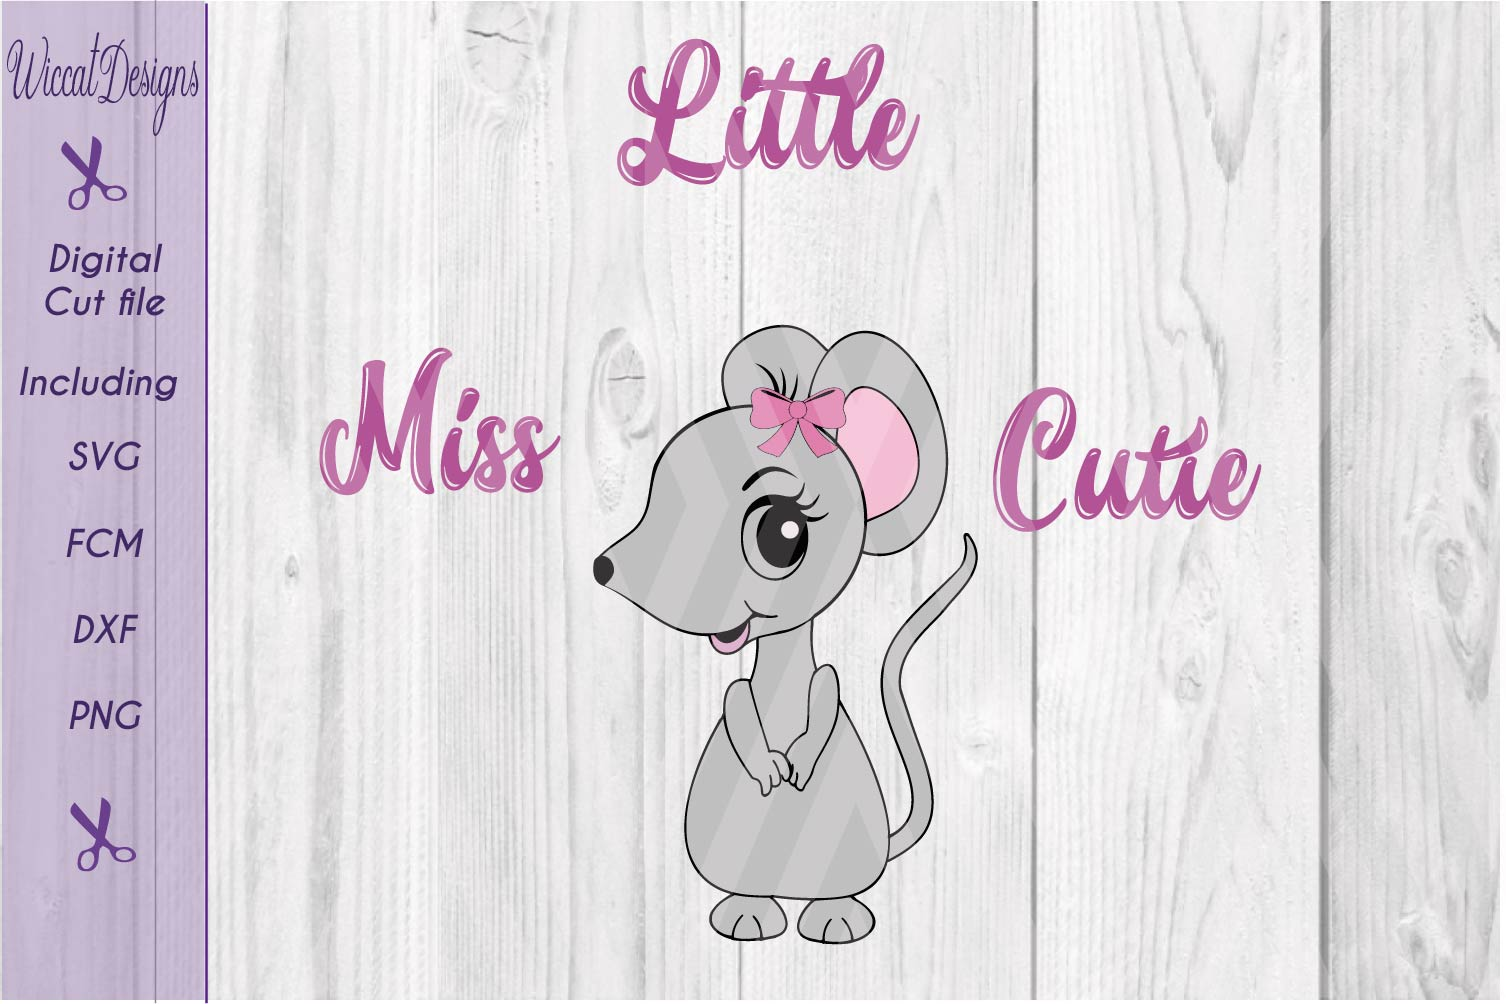 Mouse svg, Little miss cutie svg, quote svg, tshirt design svg example image 3